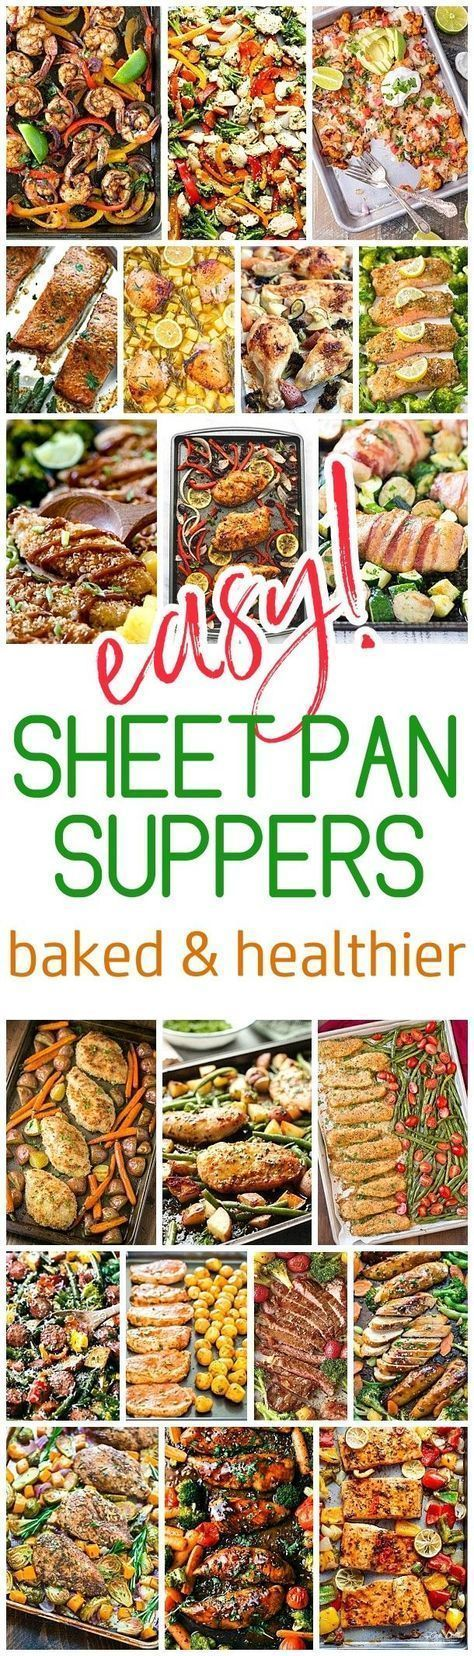 Easy One Sheet Pan Healthier Baked Family Suppers Recipes via Dreaming in DIY - Cleanup and Meal Prep is a BREEZE for quick lunch and simple dinner options. Using less oils and grease, these baked options will become your family favorites! #sheetpansuppers #sheetpanrecipes #sheetpandinners #onepanmeals #healthyrecipes #mealprep #easyrecipes #healthydinners #healthysuppers #healthylunches #easylunches #easydinners